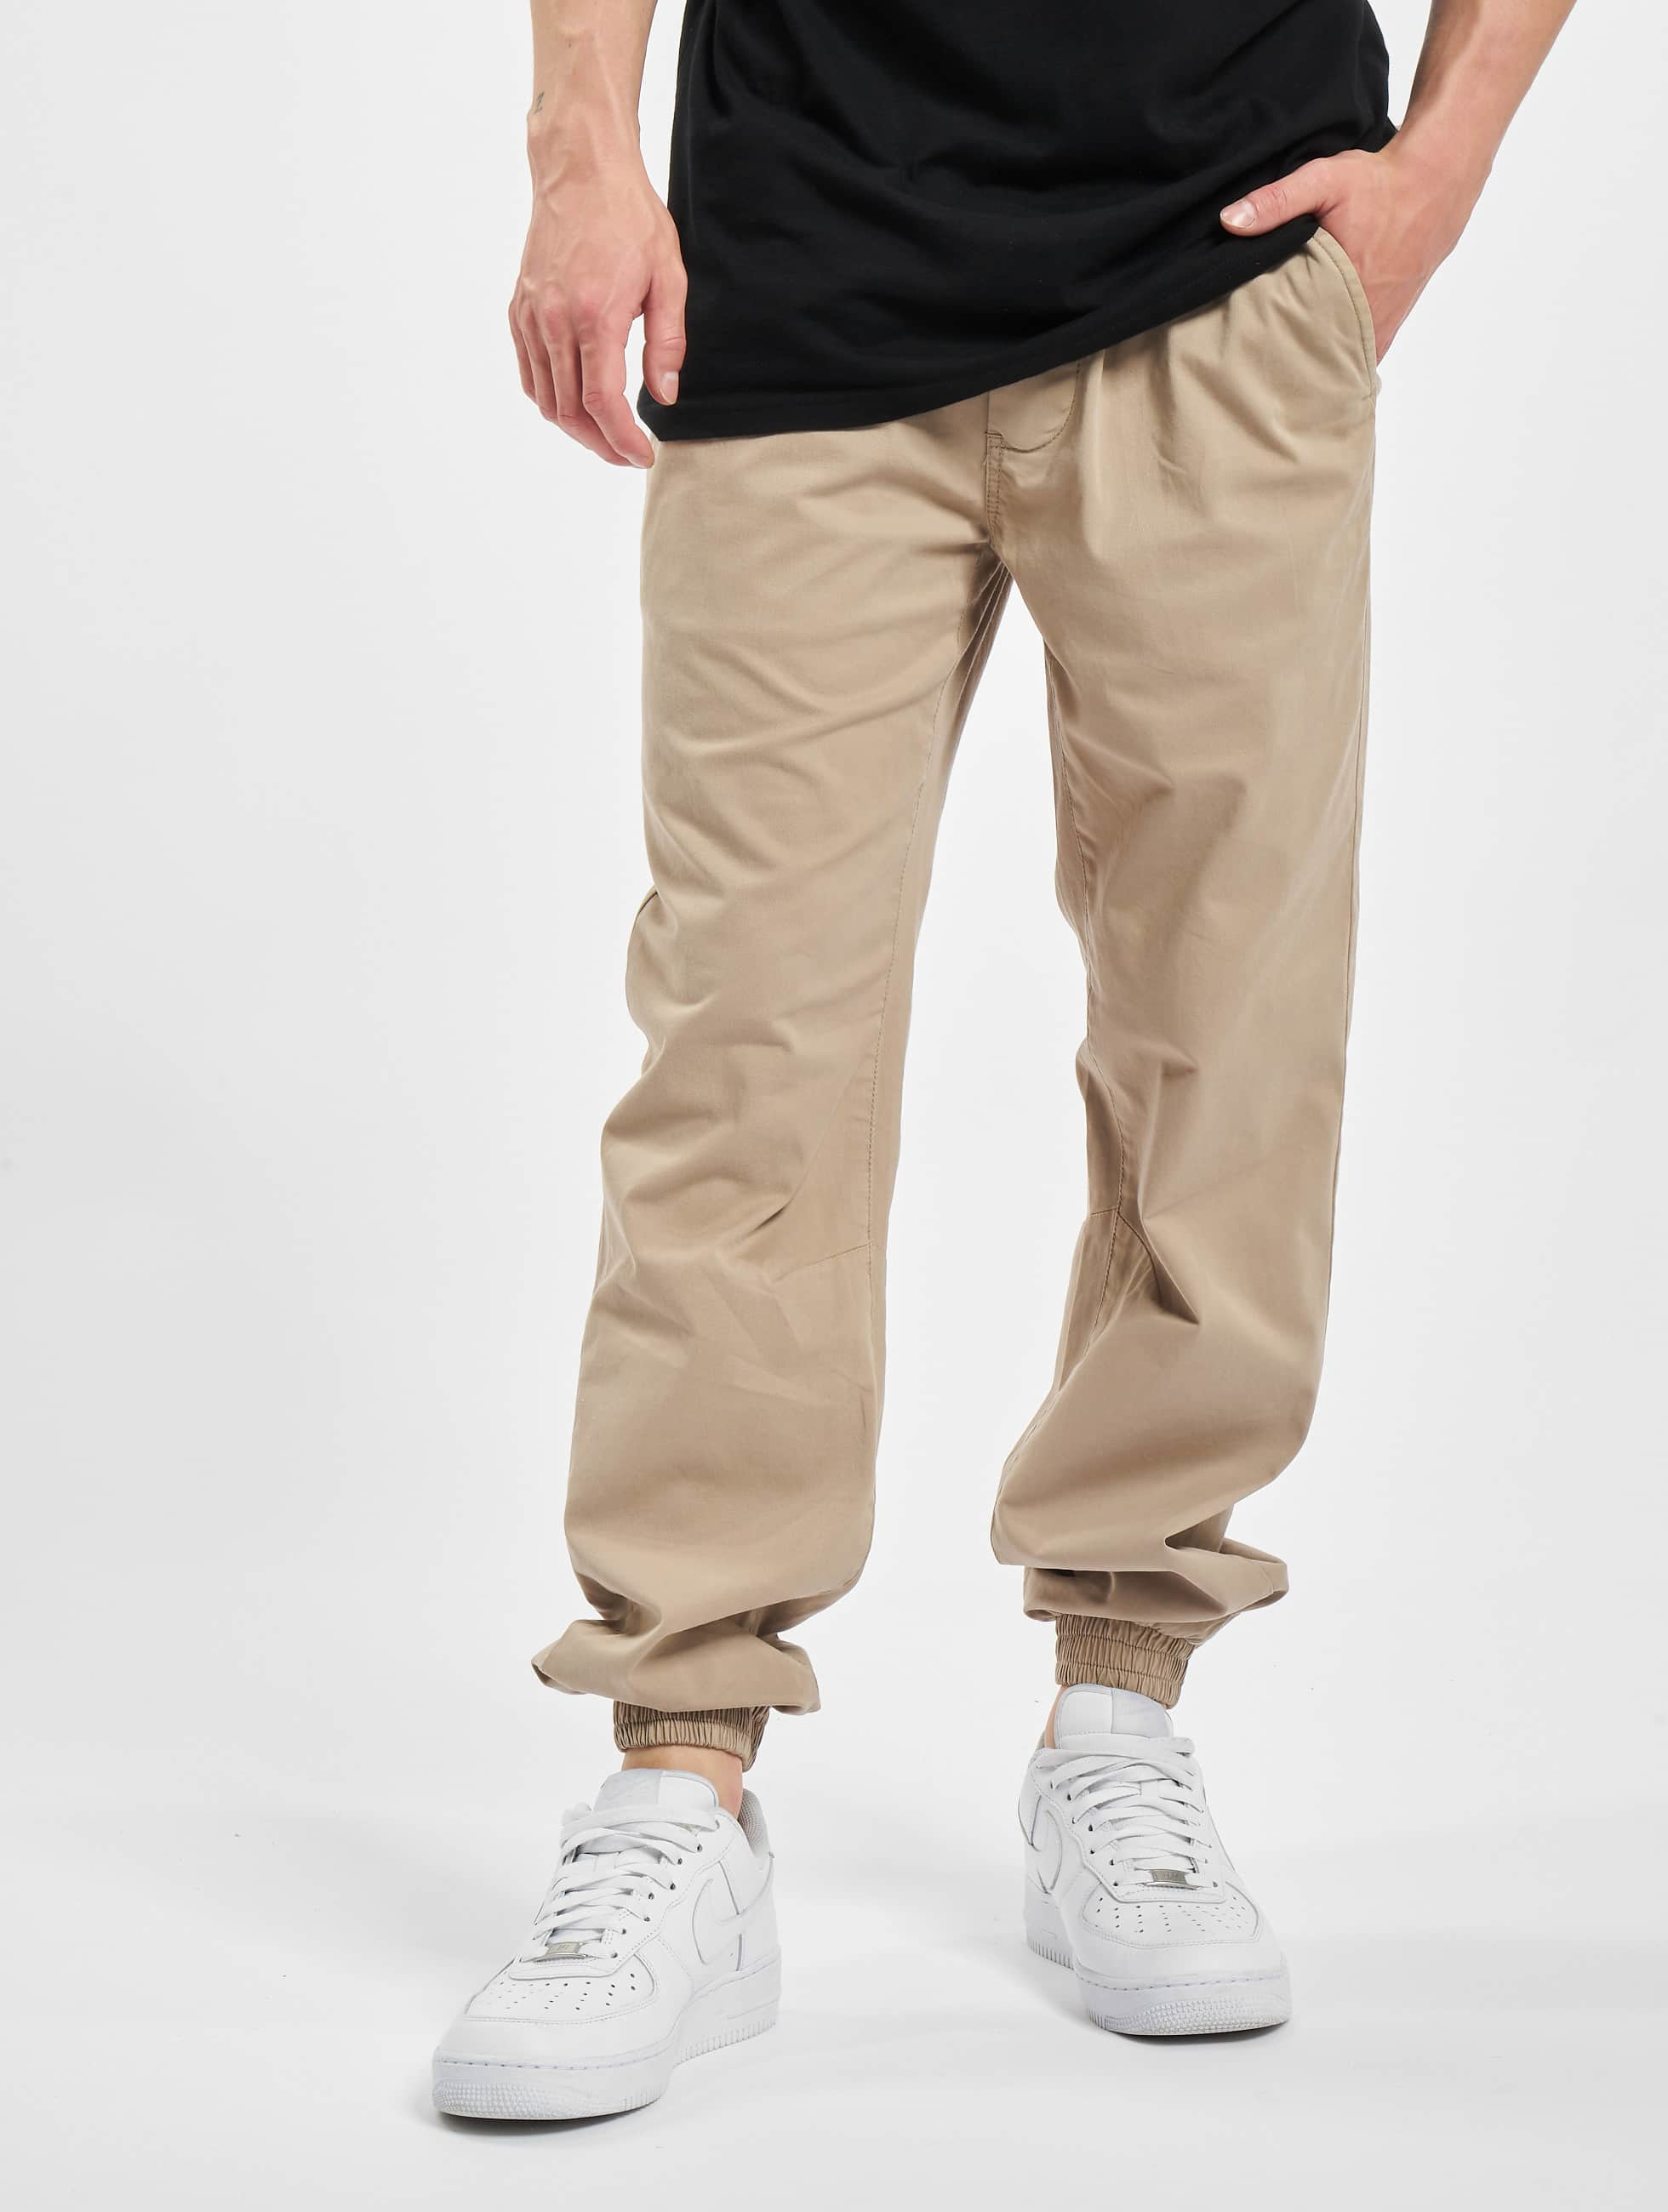 Nike Fleece Kinder Urban Classics Herren Jogginghose Stretch Twill In Beige